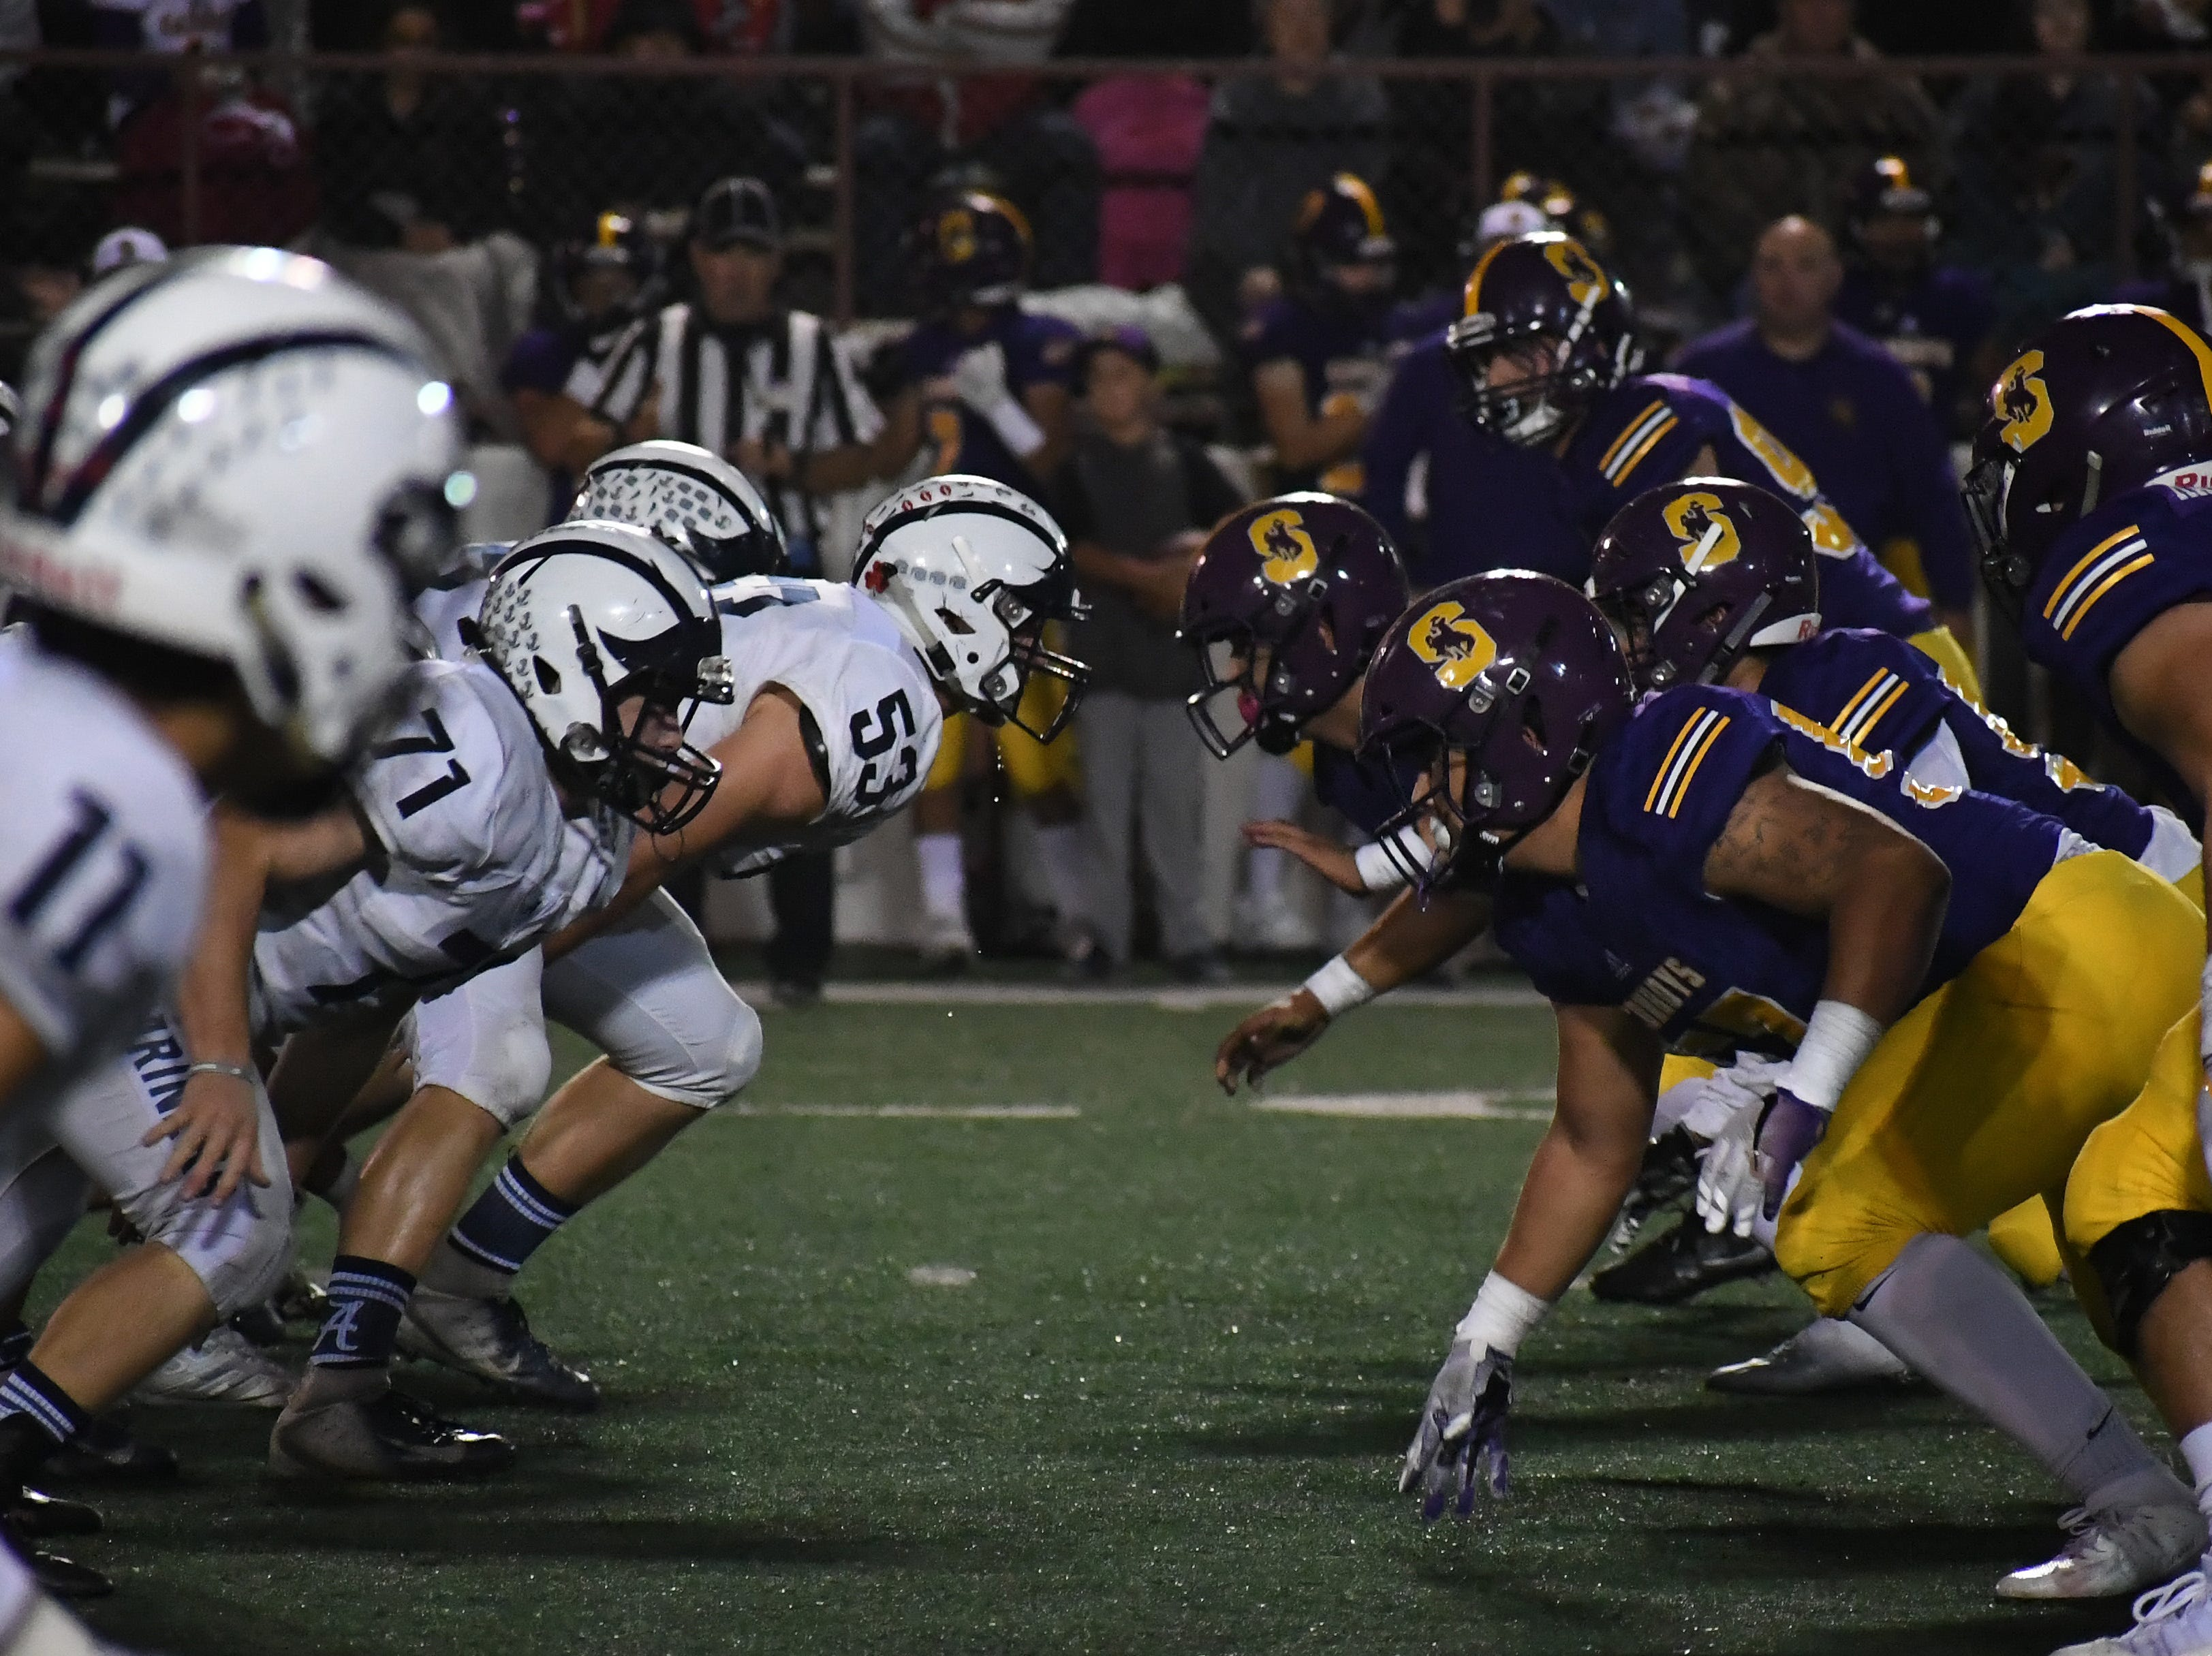 The Salinas defense fires off the line in the second quarter.